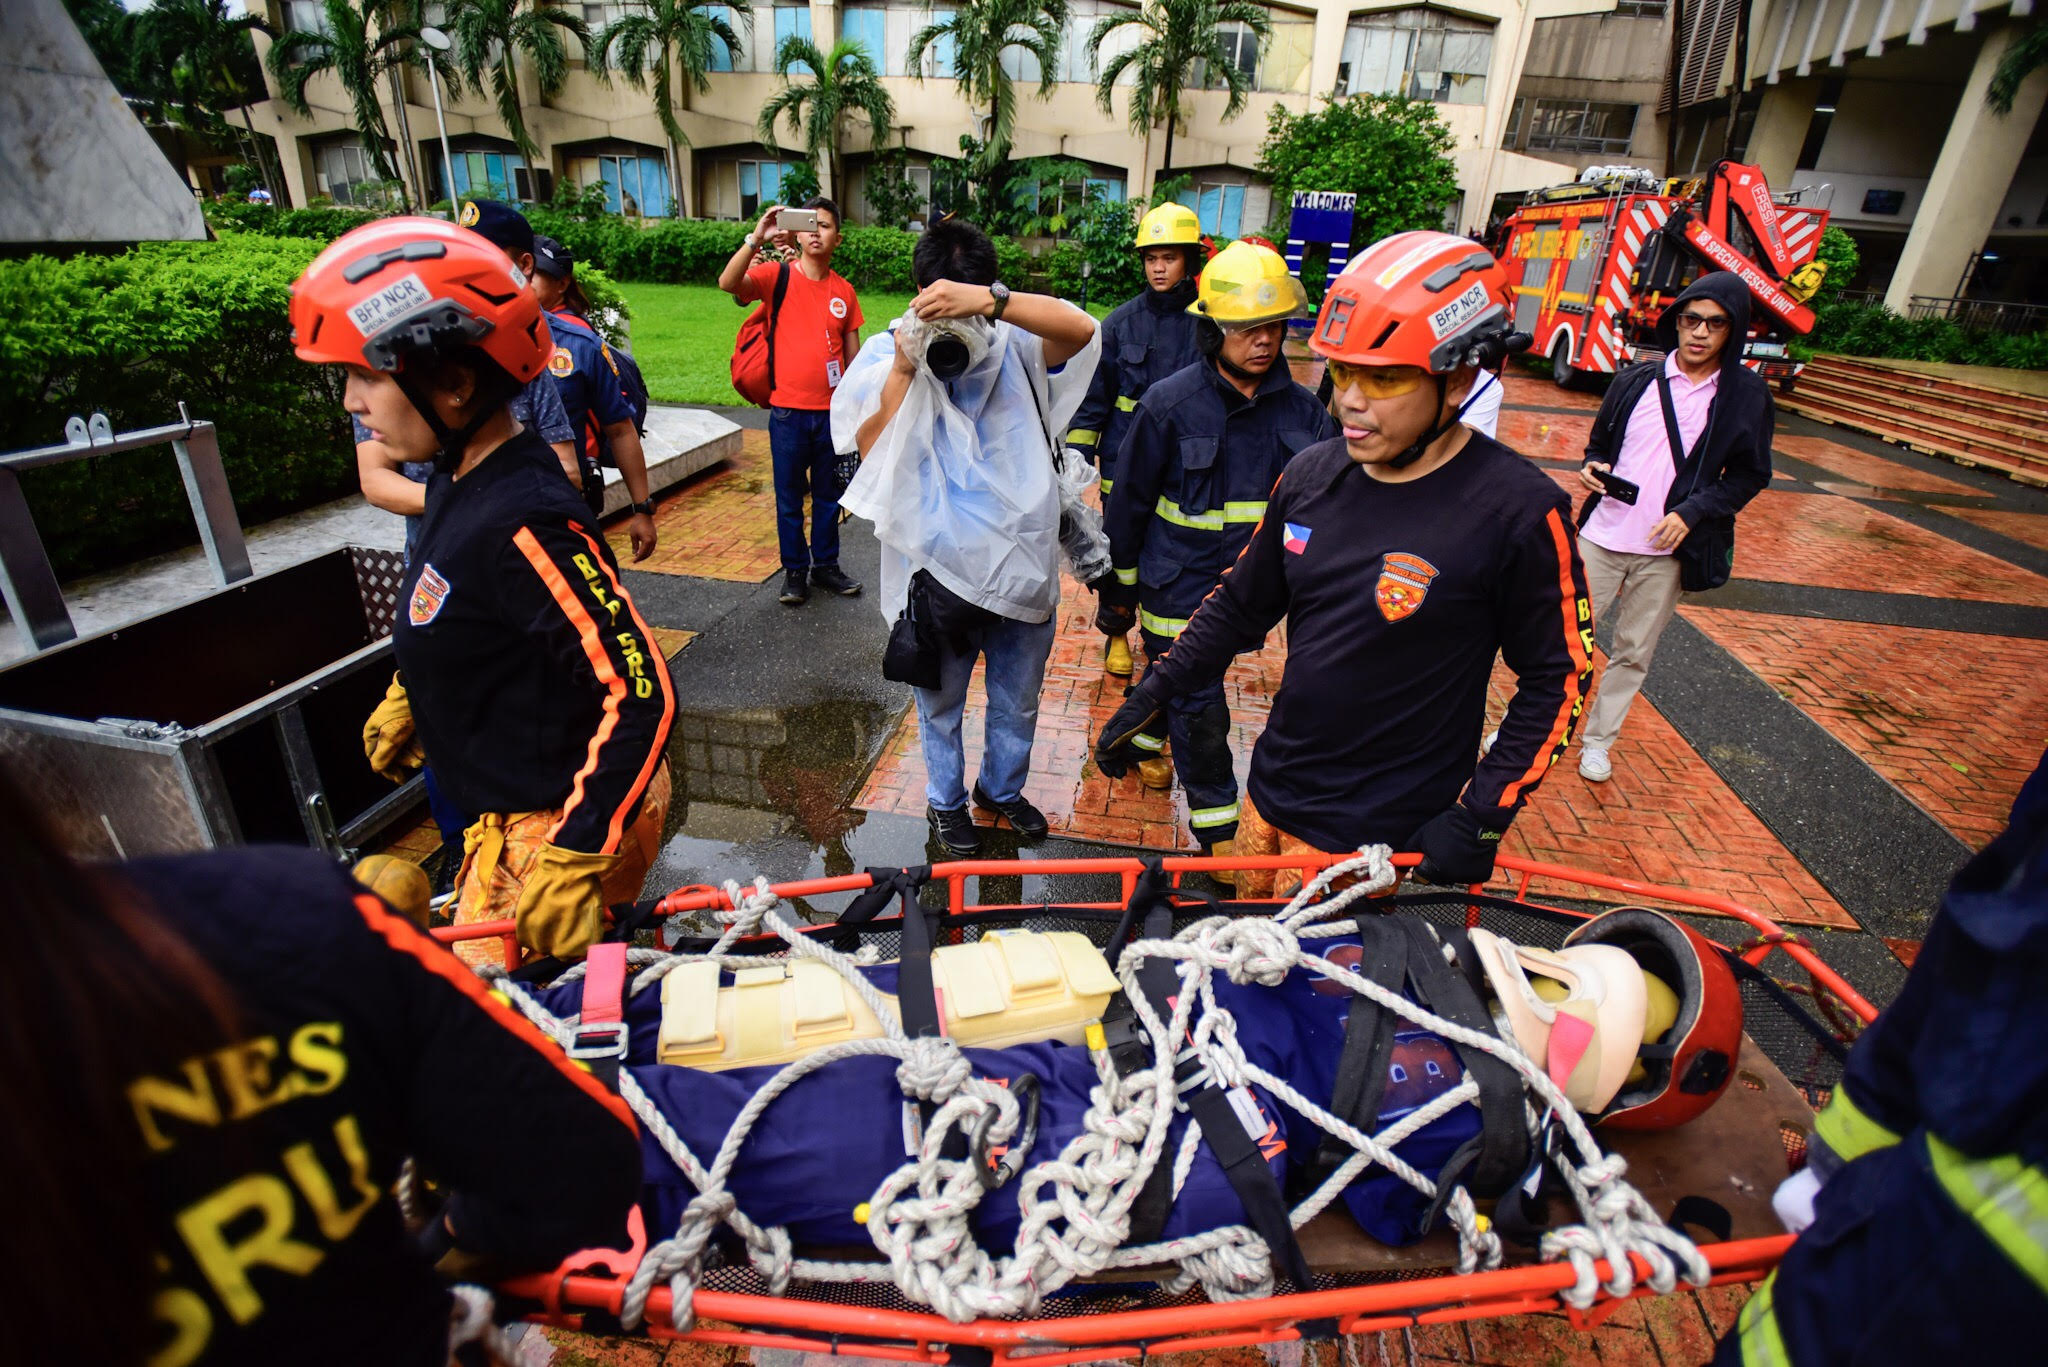 RESCUE MISSIONS. A high altitude rescue was executed at Quezon City. Photo by Maria Tan/Rappler